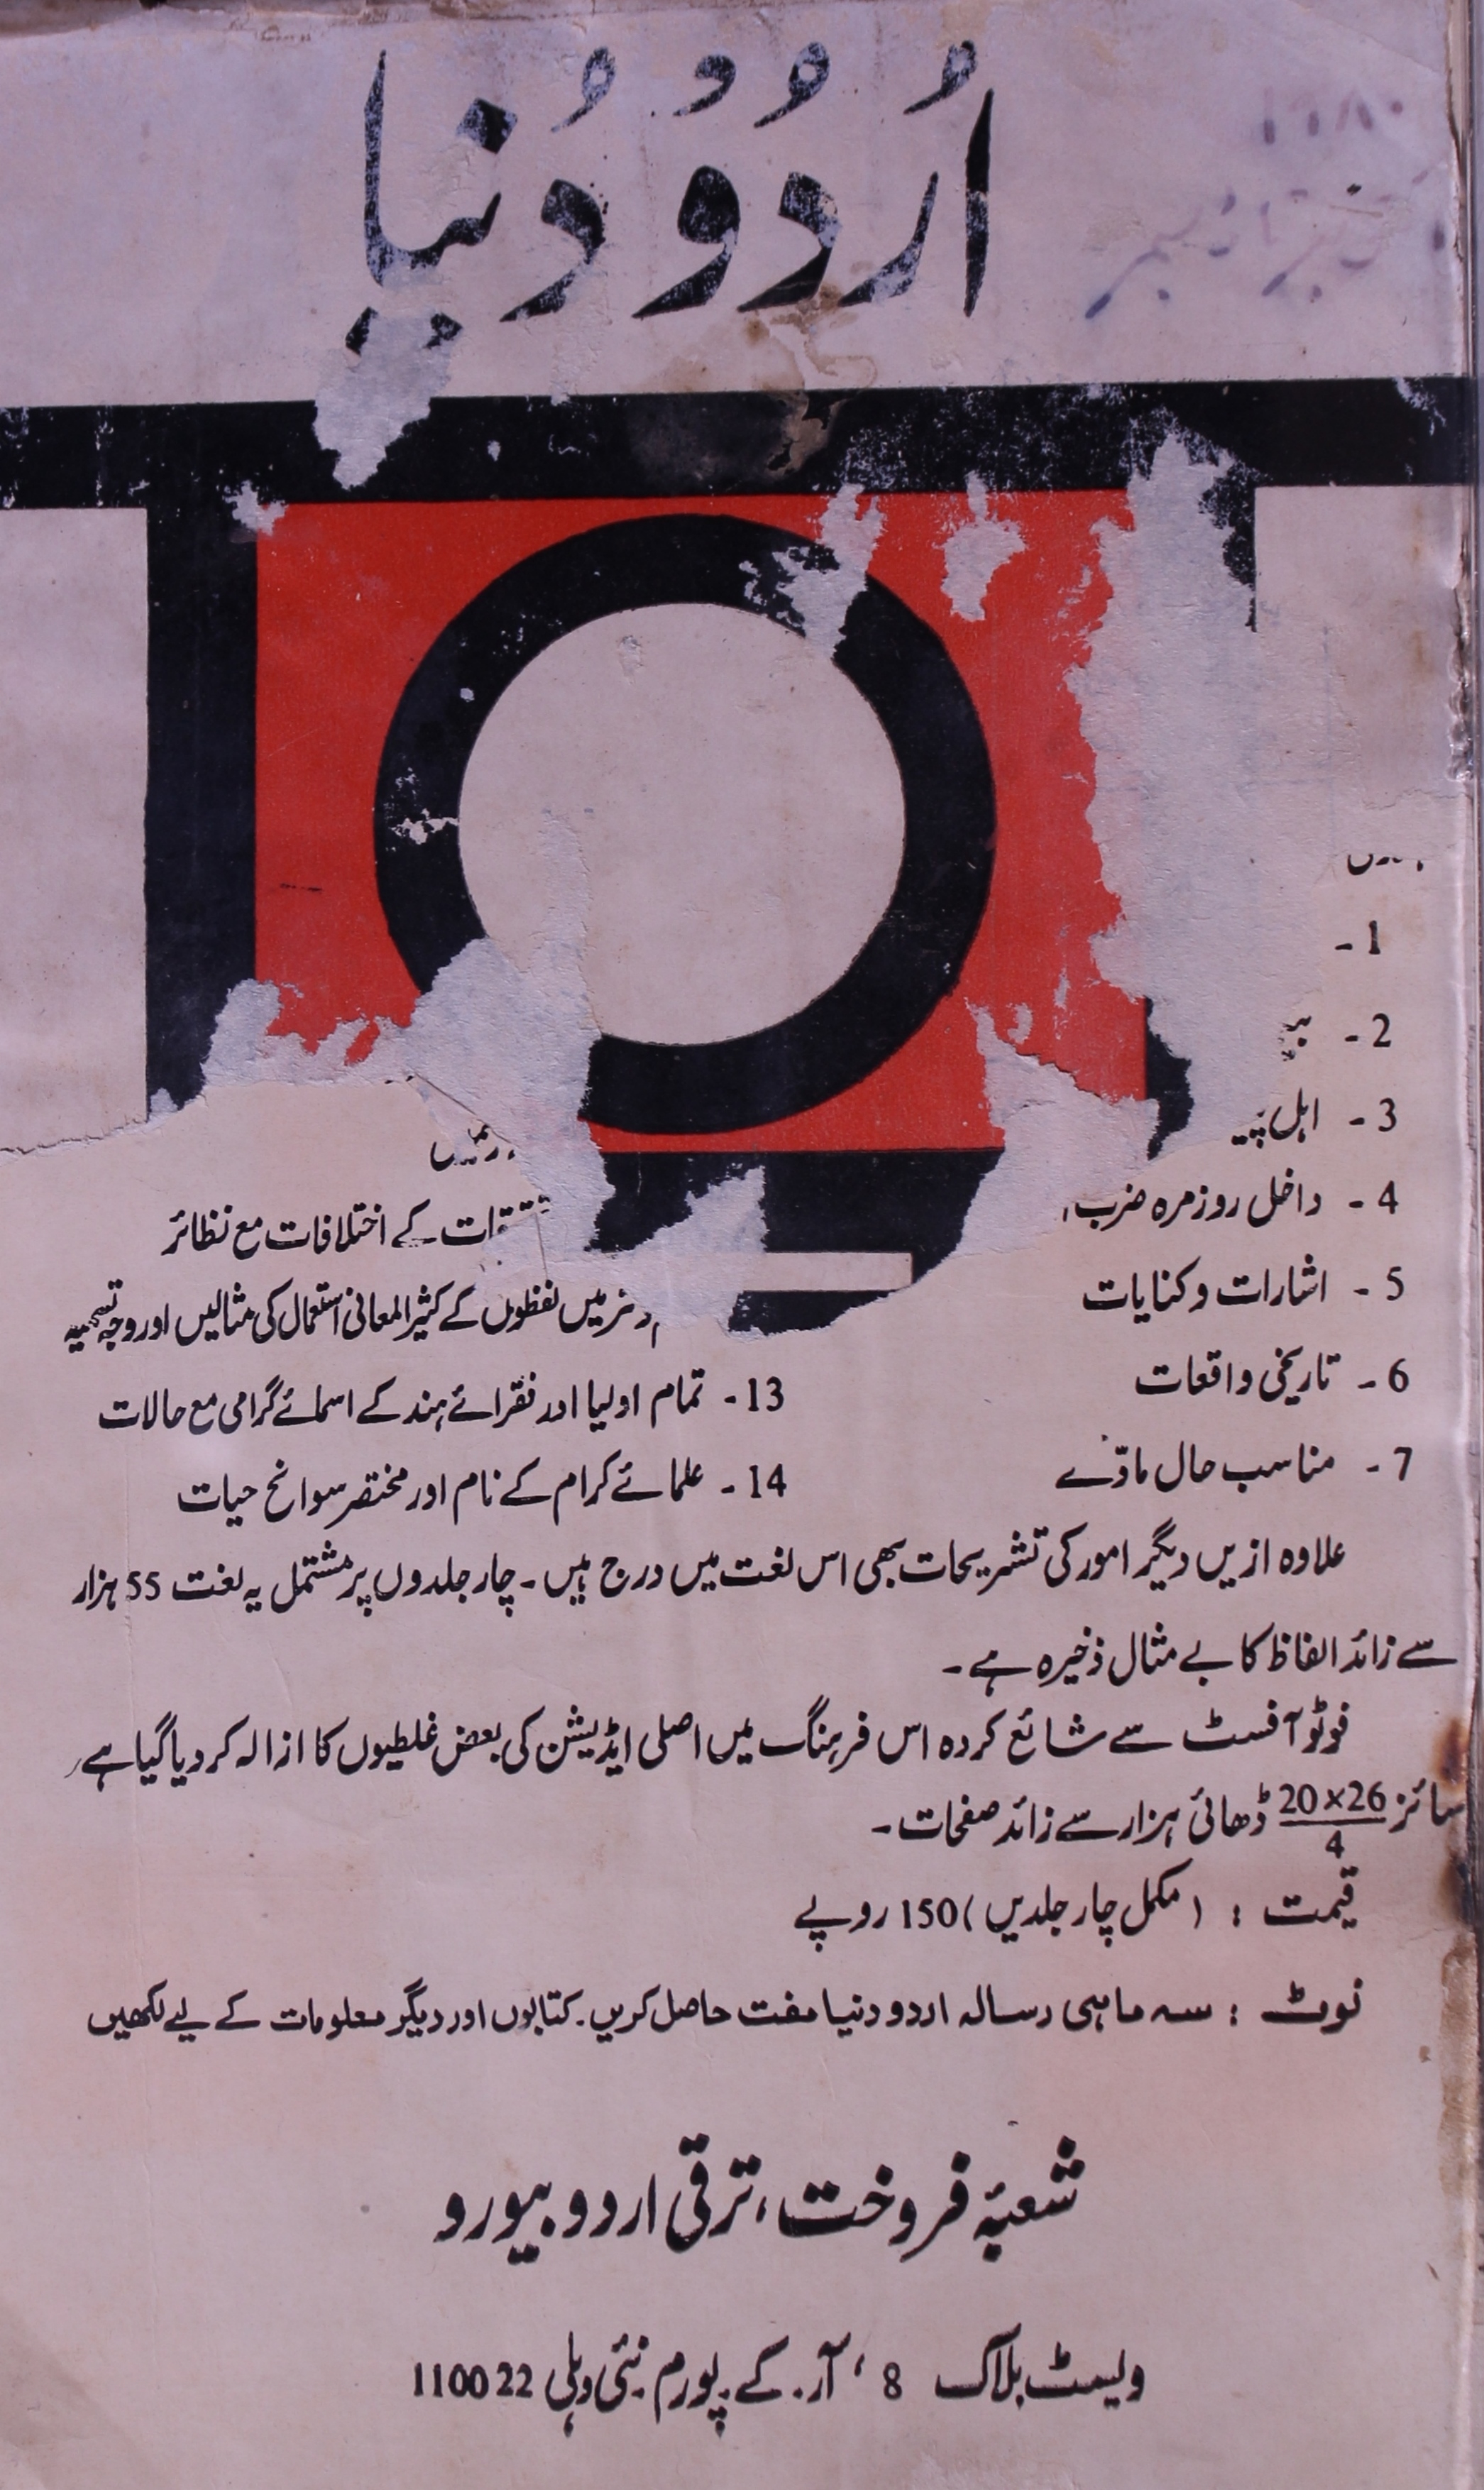 Urdu Duniya Jild 1 No 4 October-December 1980